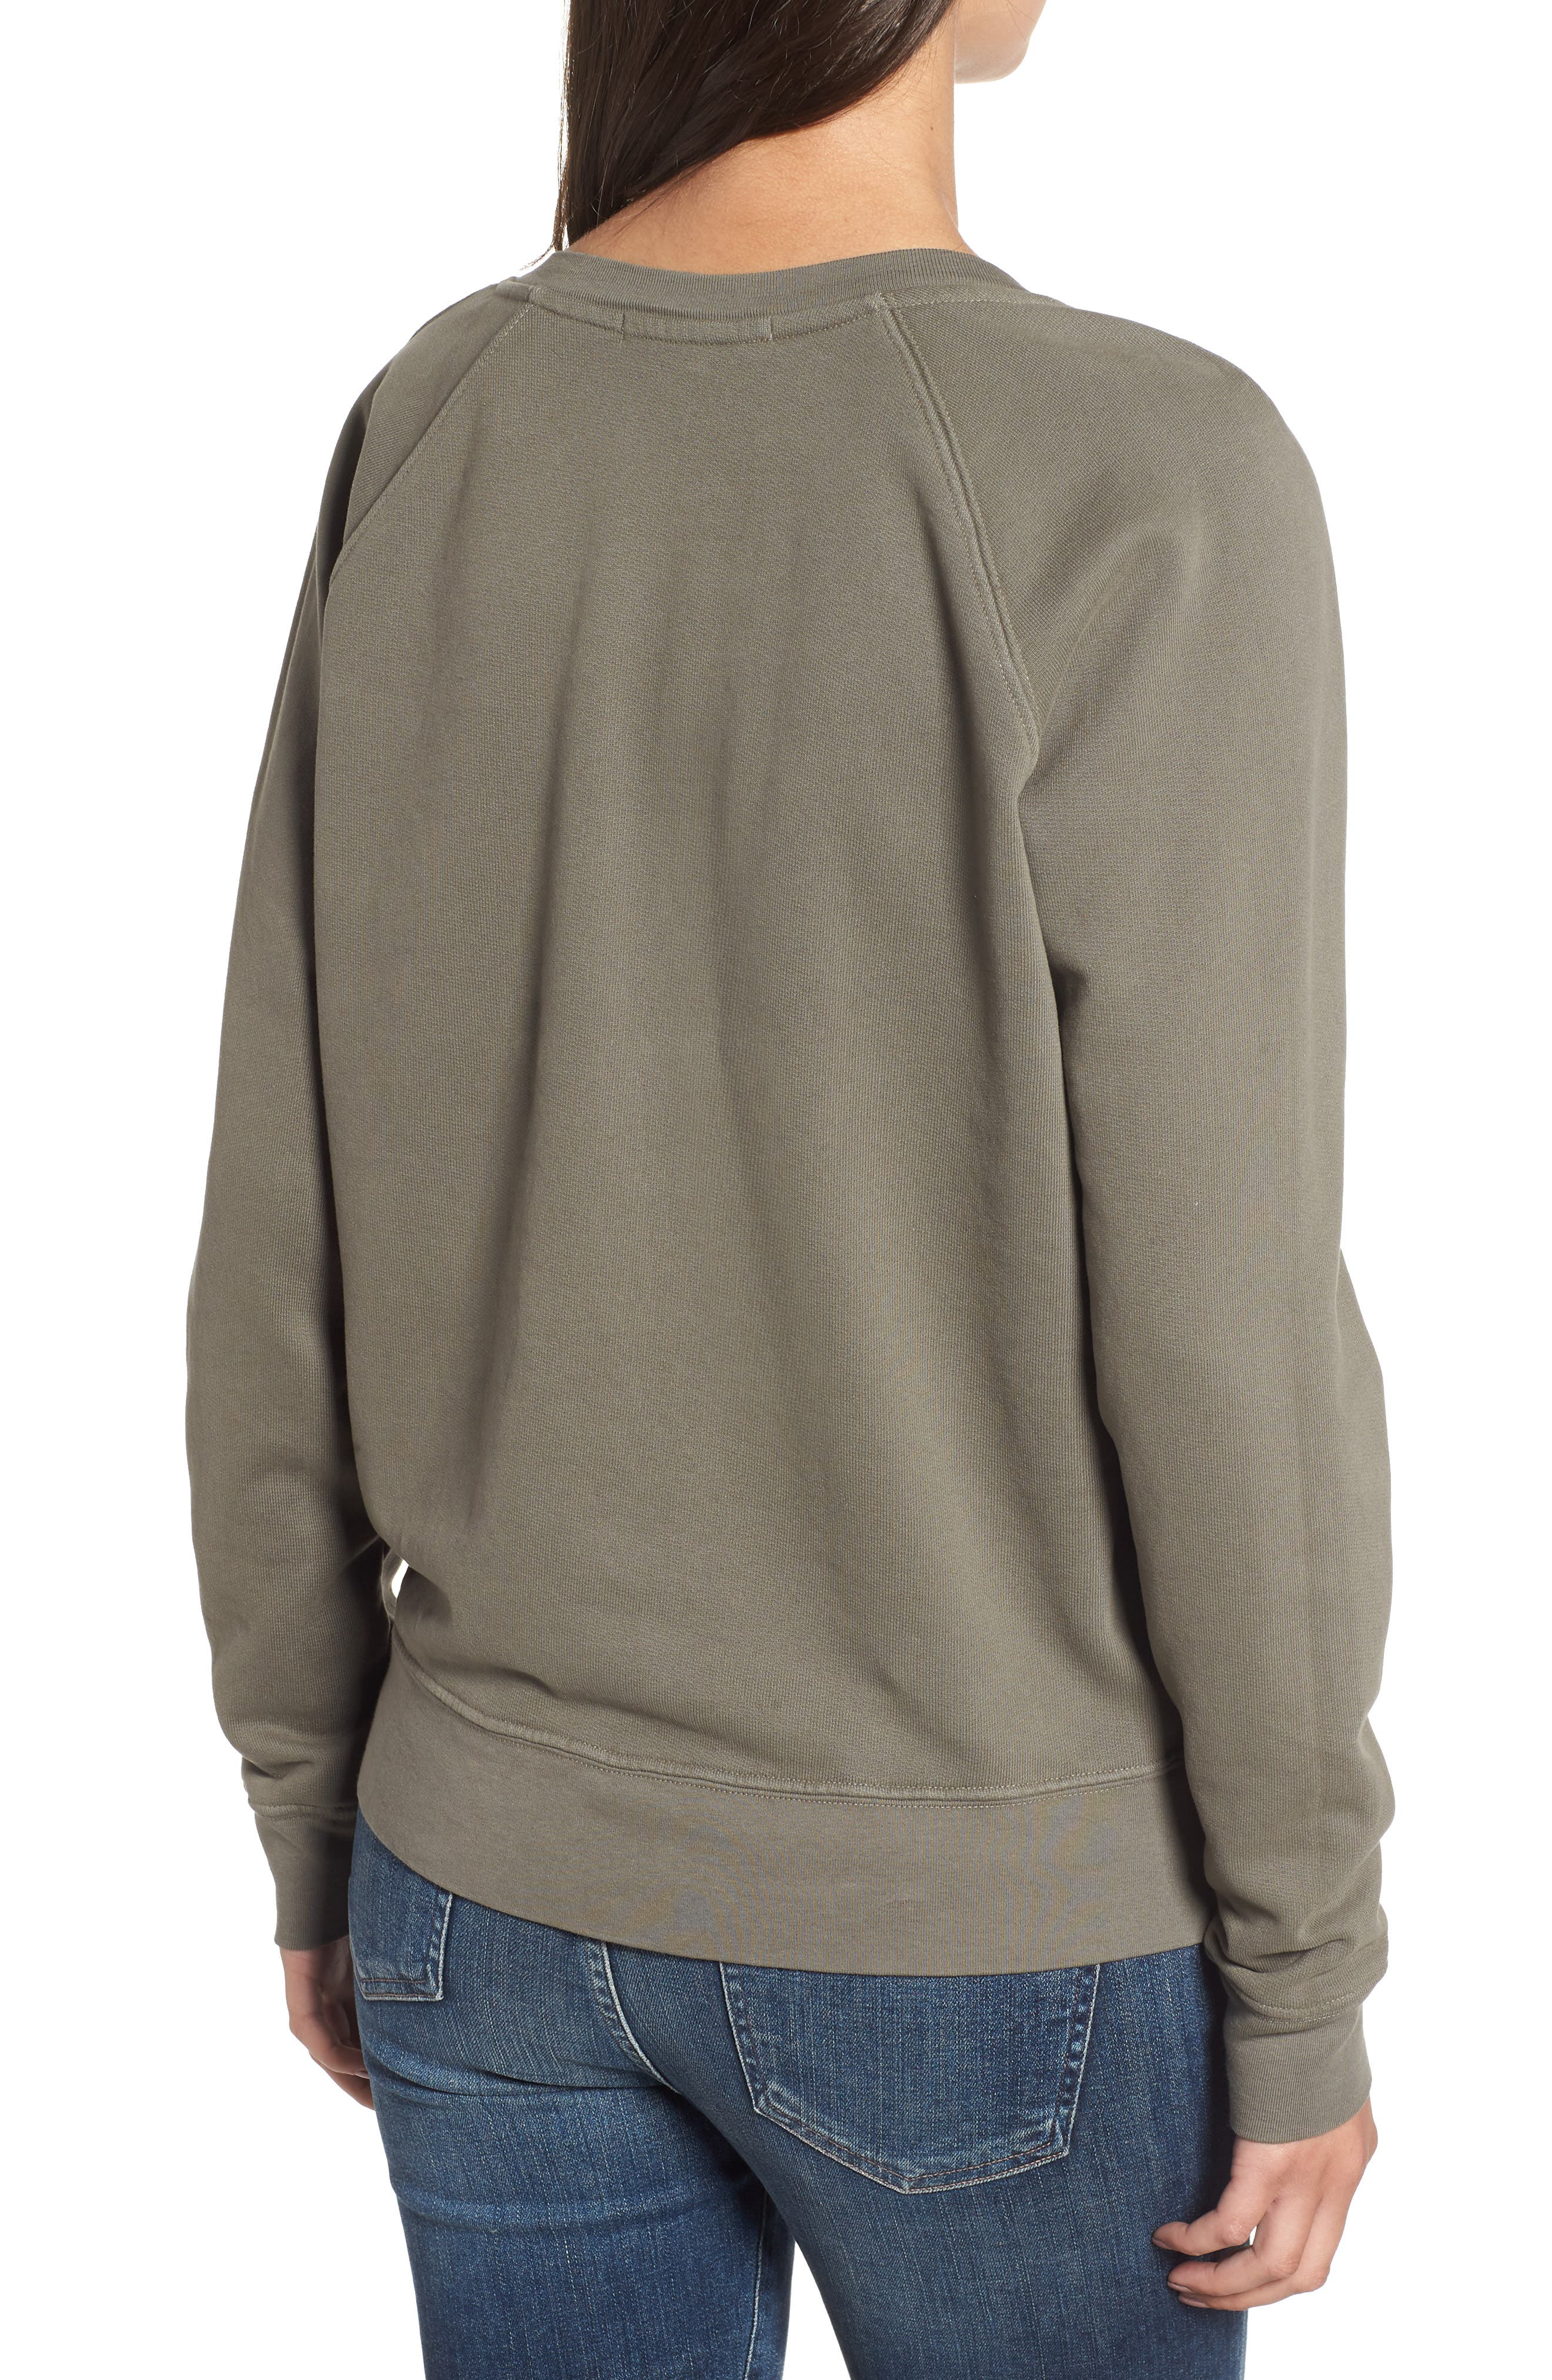 French Terry Sweatshirt,                             Alternate thumbnail 2, color,                             300